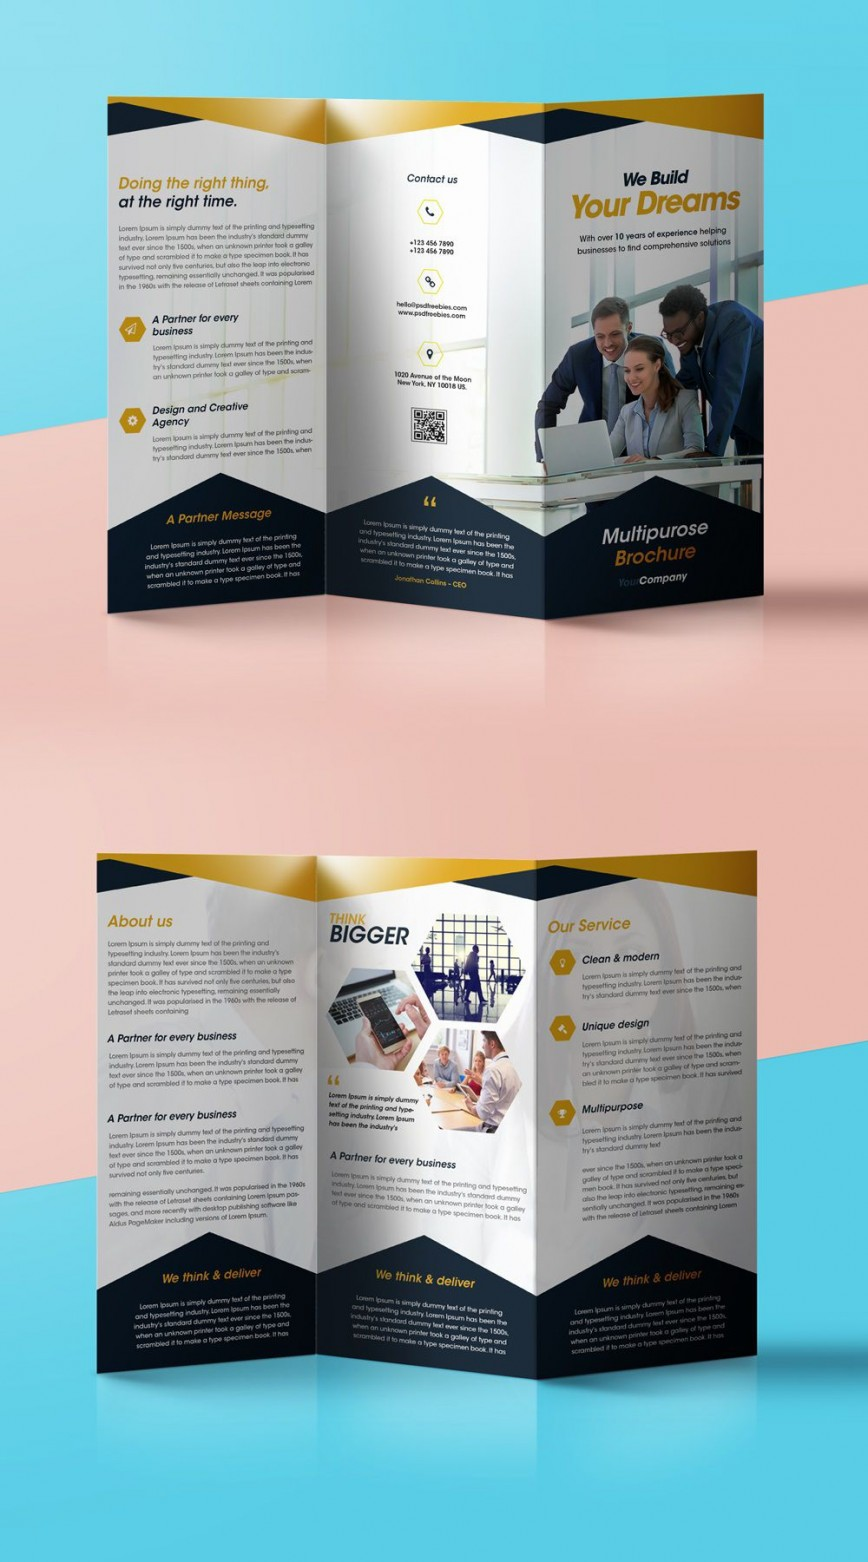 006 Incredible 3 Fold Brochure Template High Def  For Free868